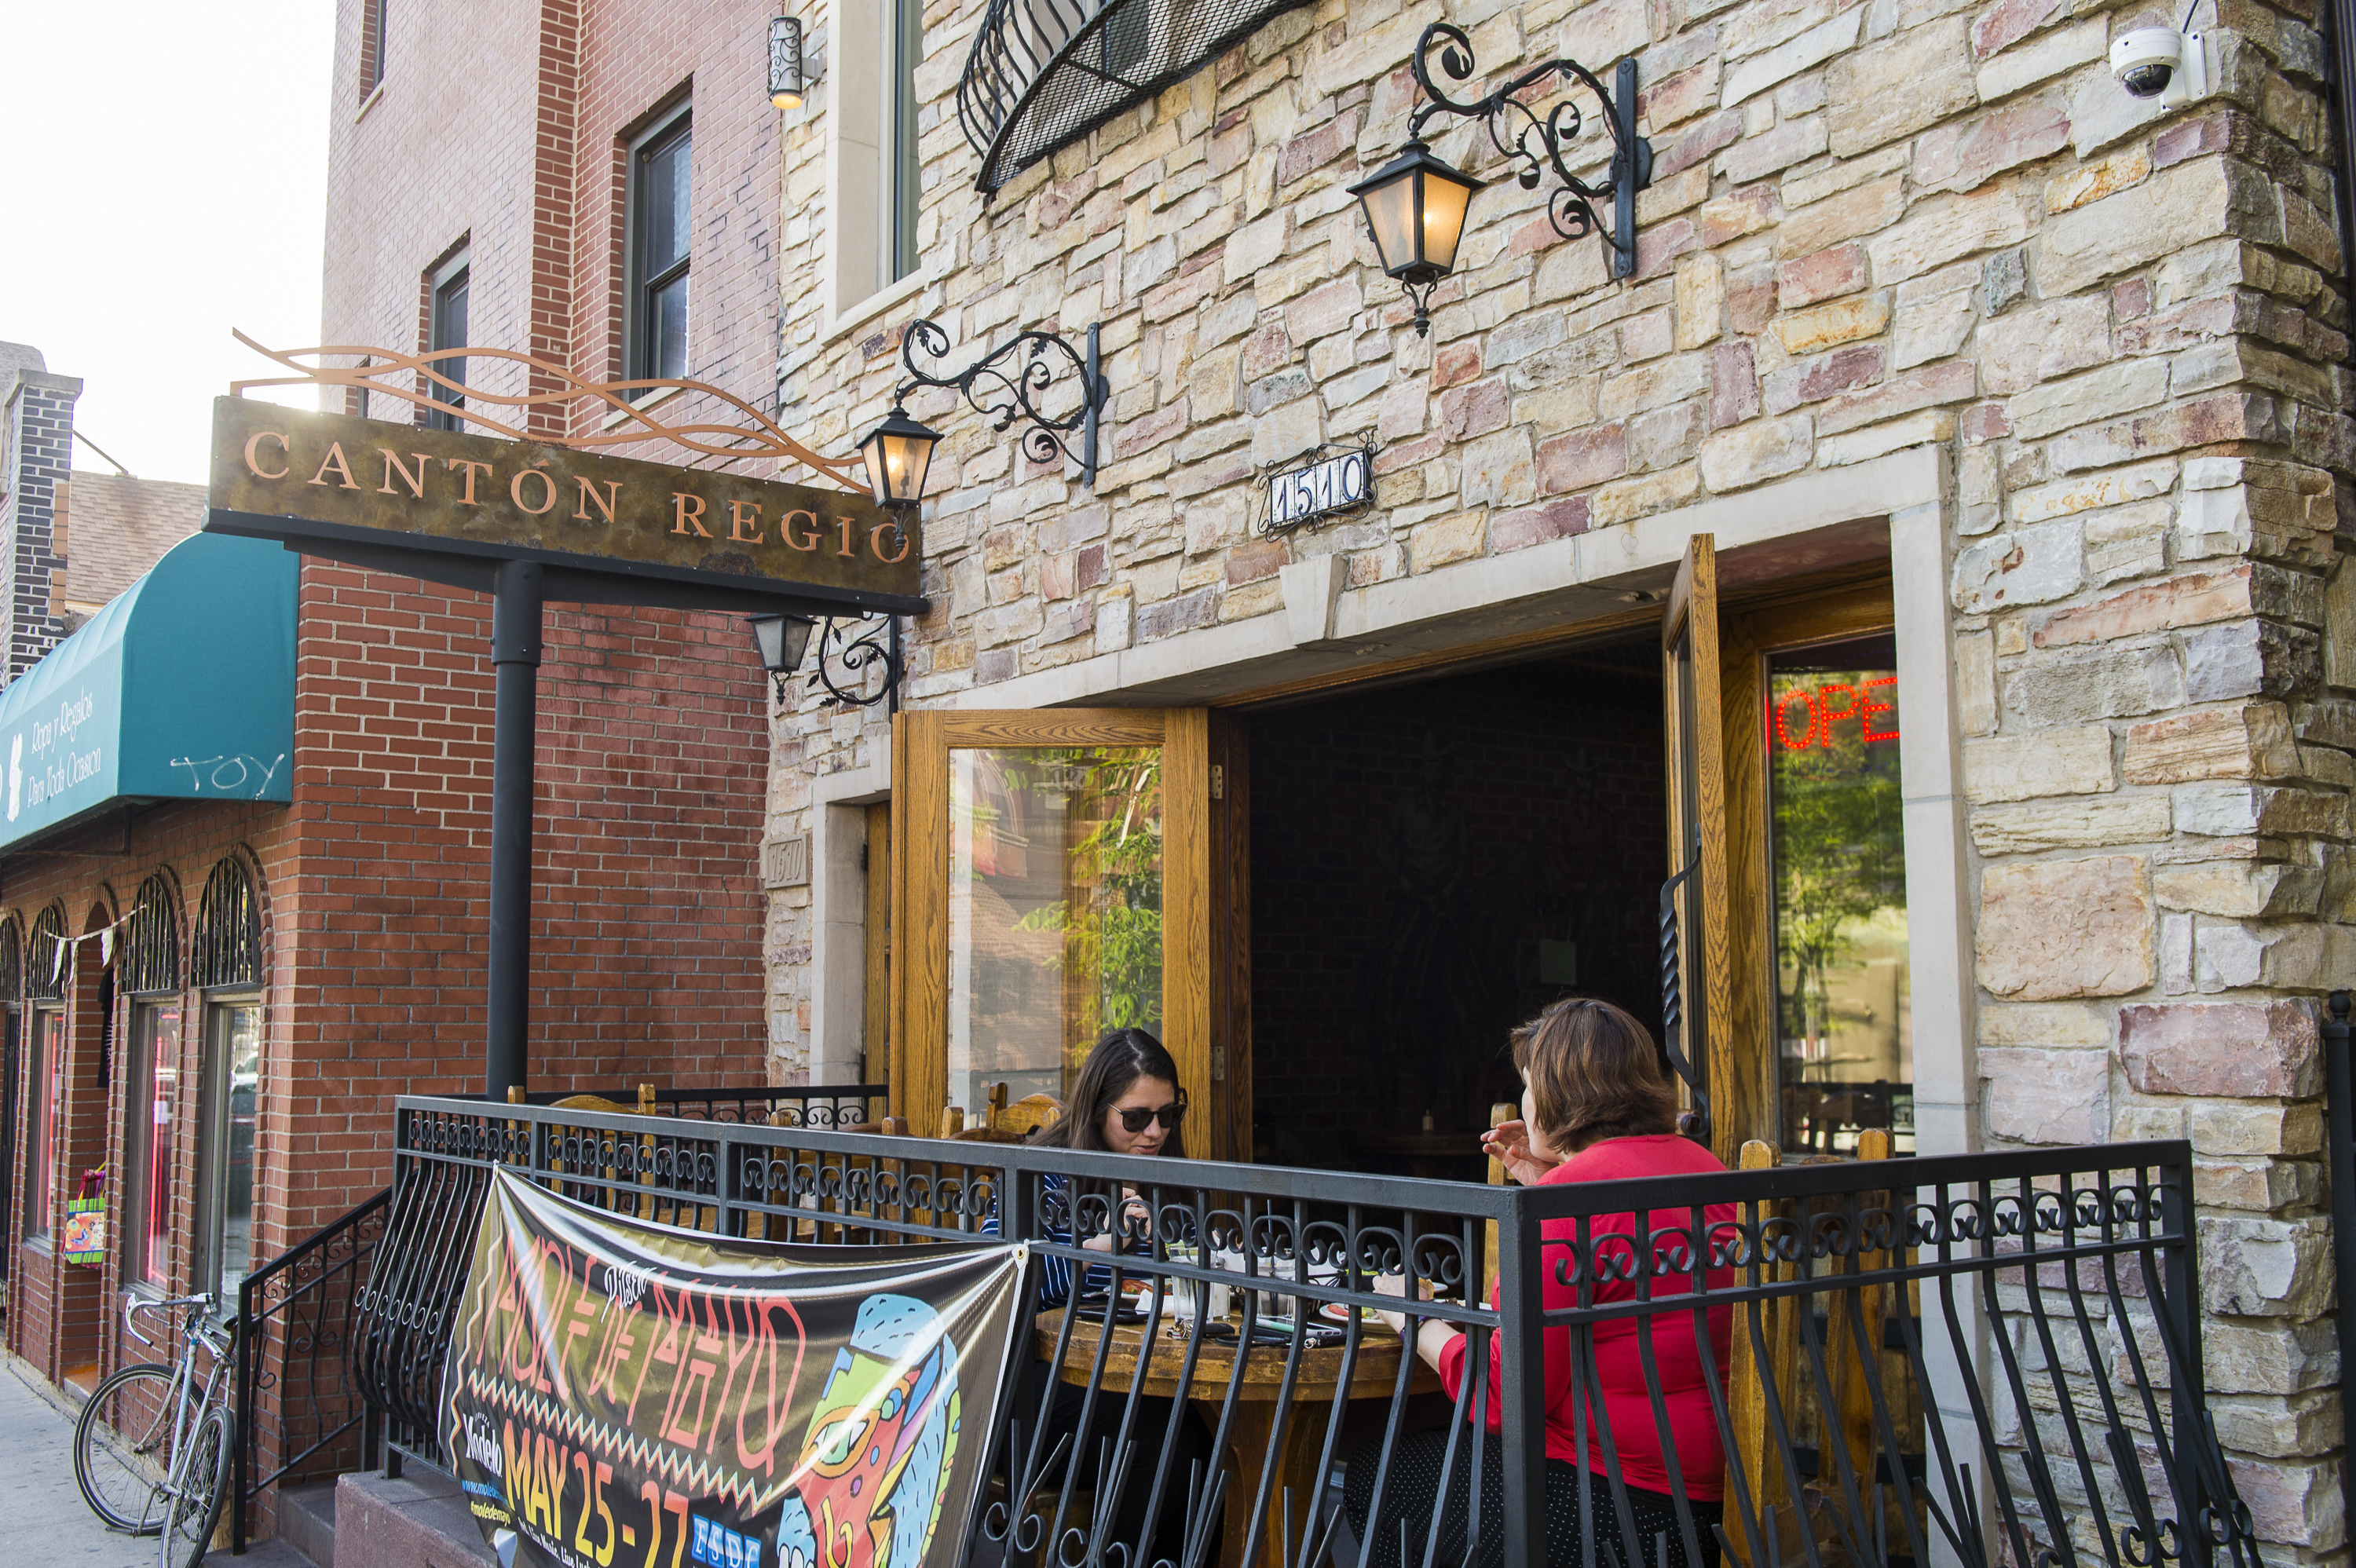 Diners outside at Cantón Regio, 1510 W. 18th St., one of 21 restaurants taking part in ¡Buen Provecho! Taste of Pilsen on Tuesday, Sept. 28.